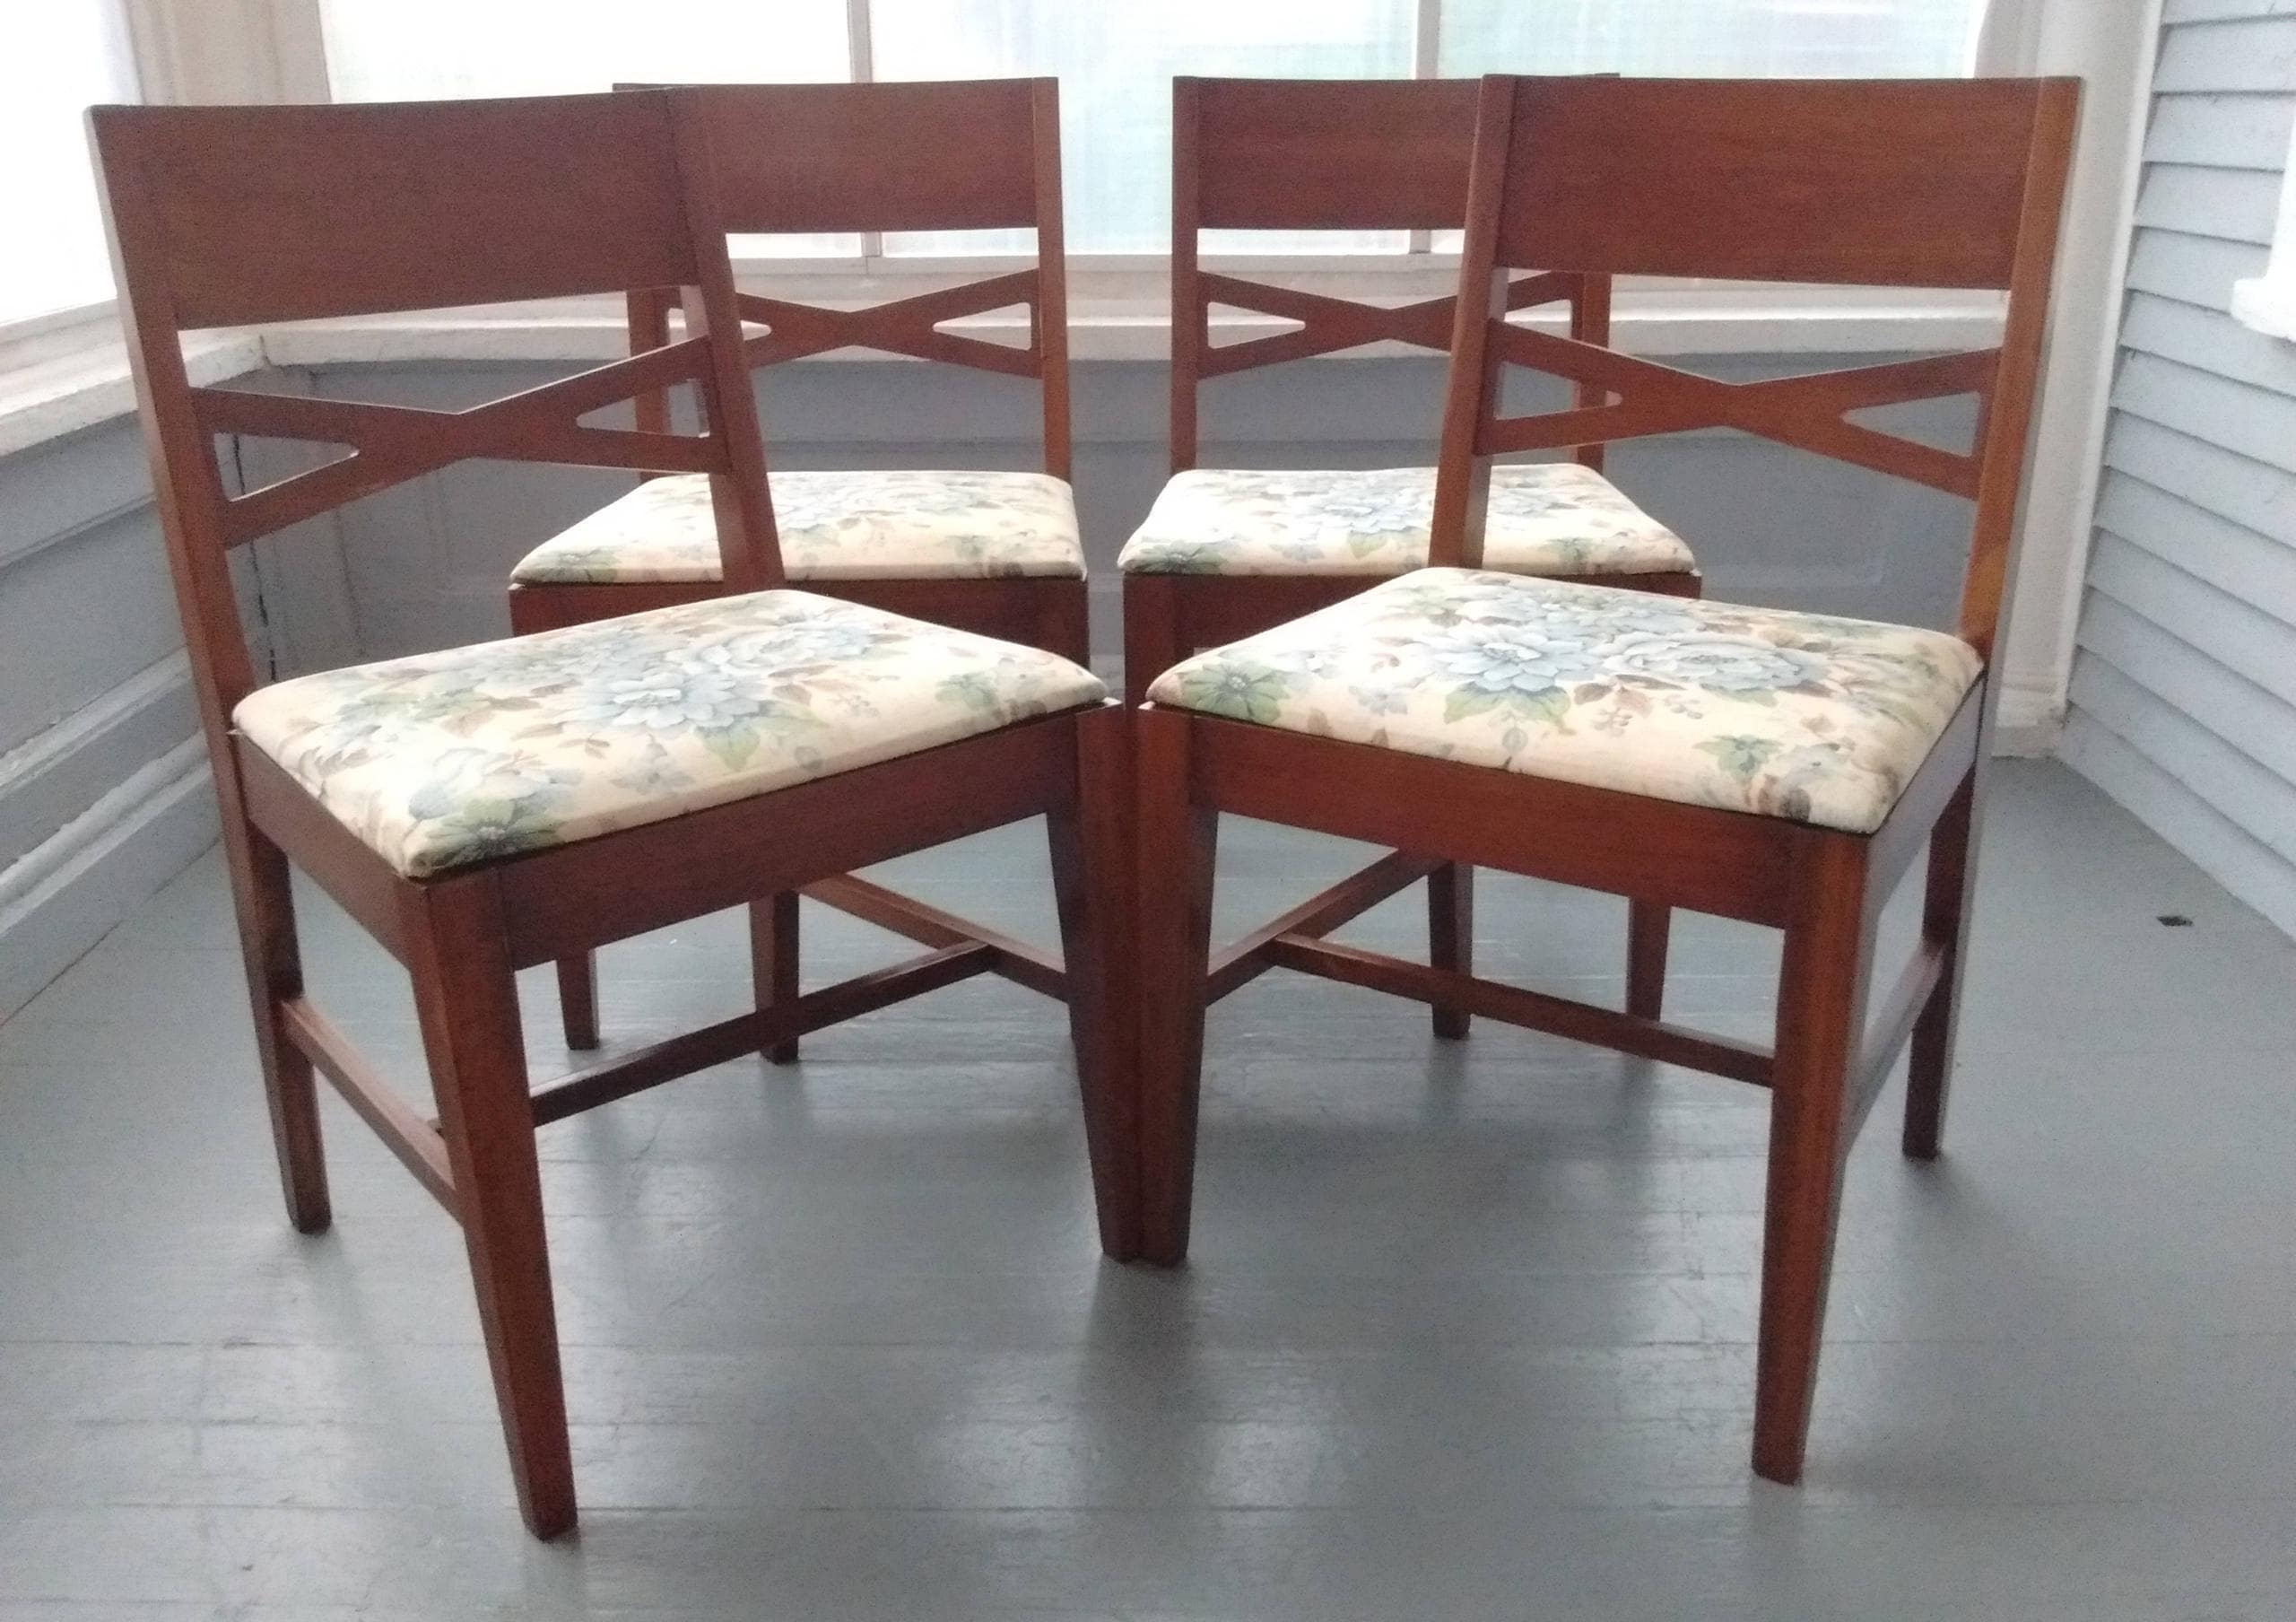 Vintage Set Of Four Wood Dining Chairs Danish Modern Mid